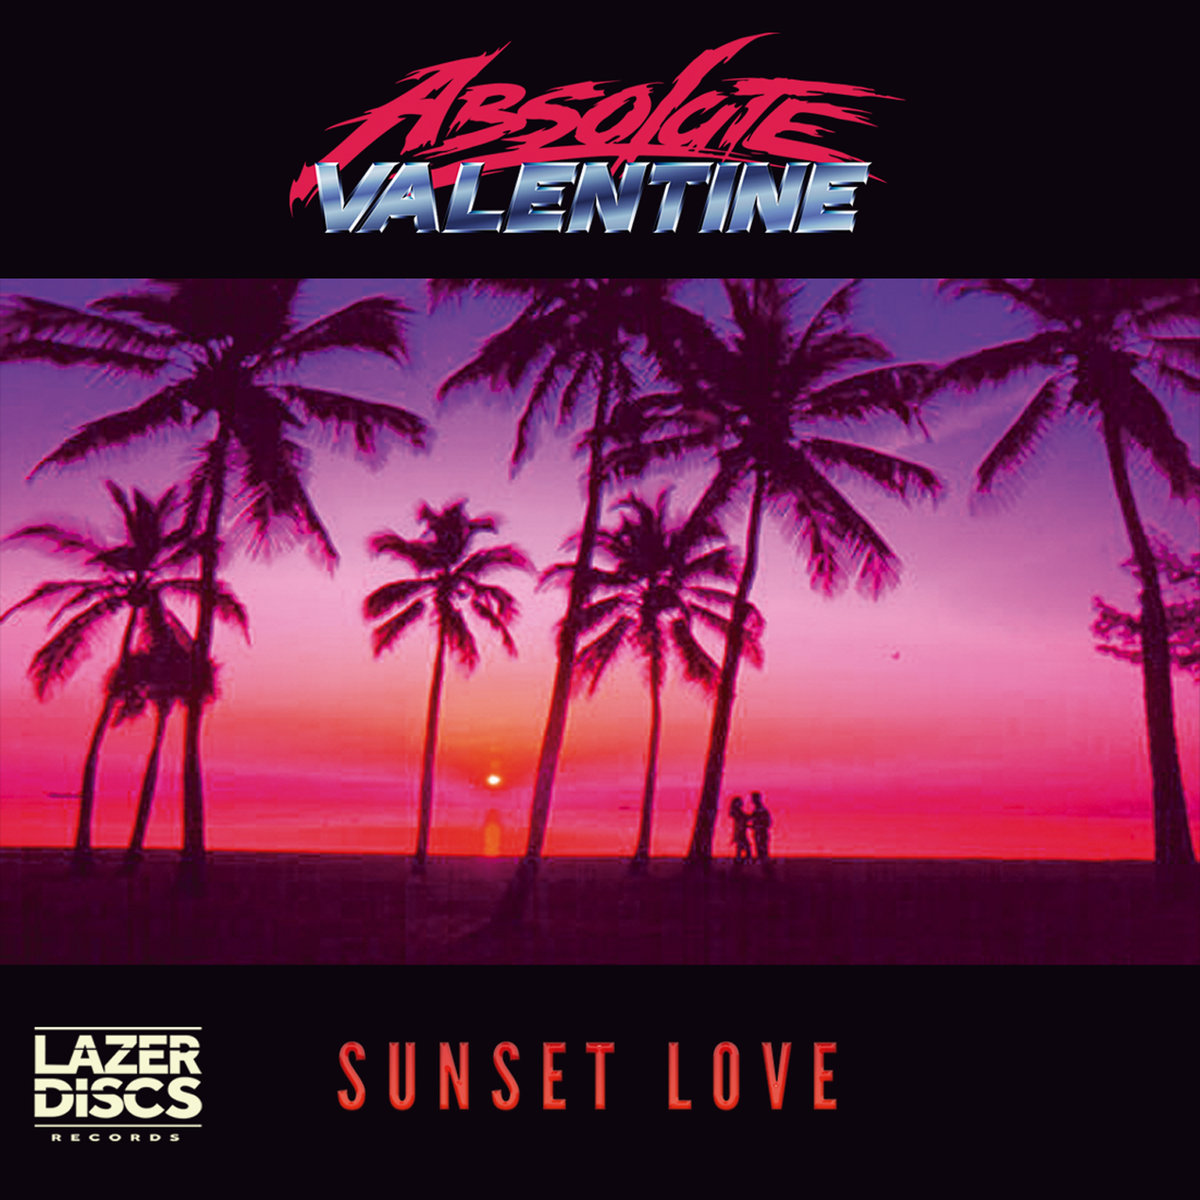 Absolute Valentine - Sunset Love 2 - fanzine